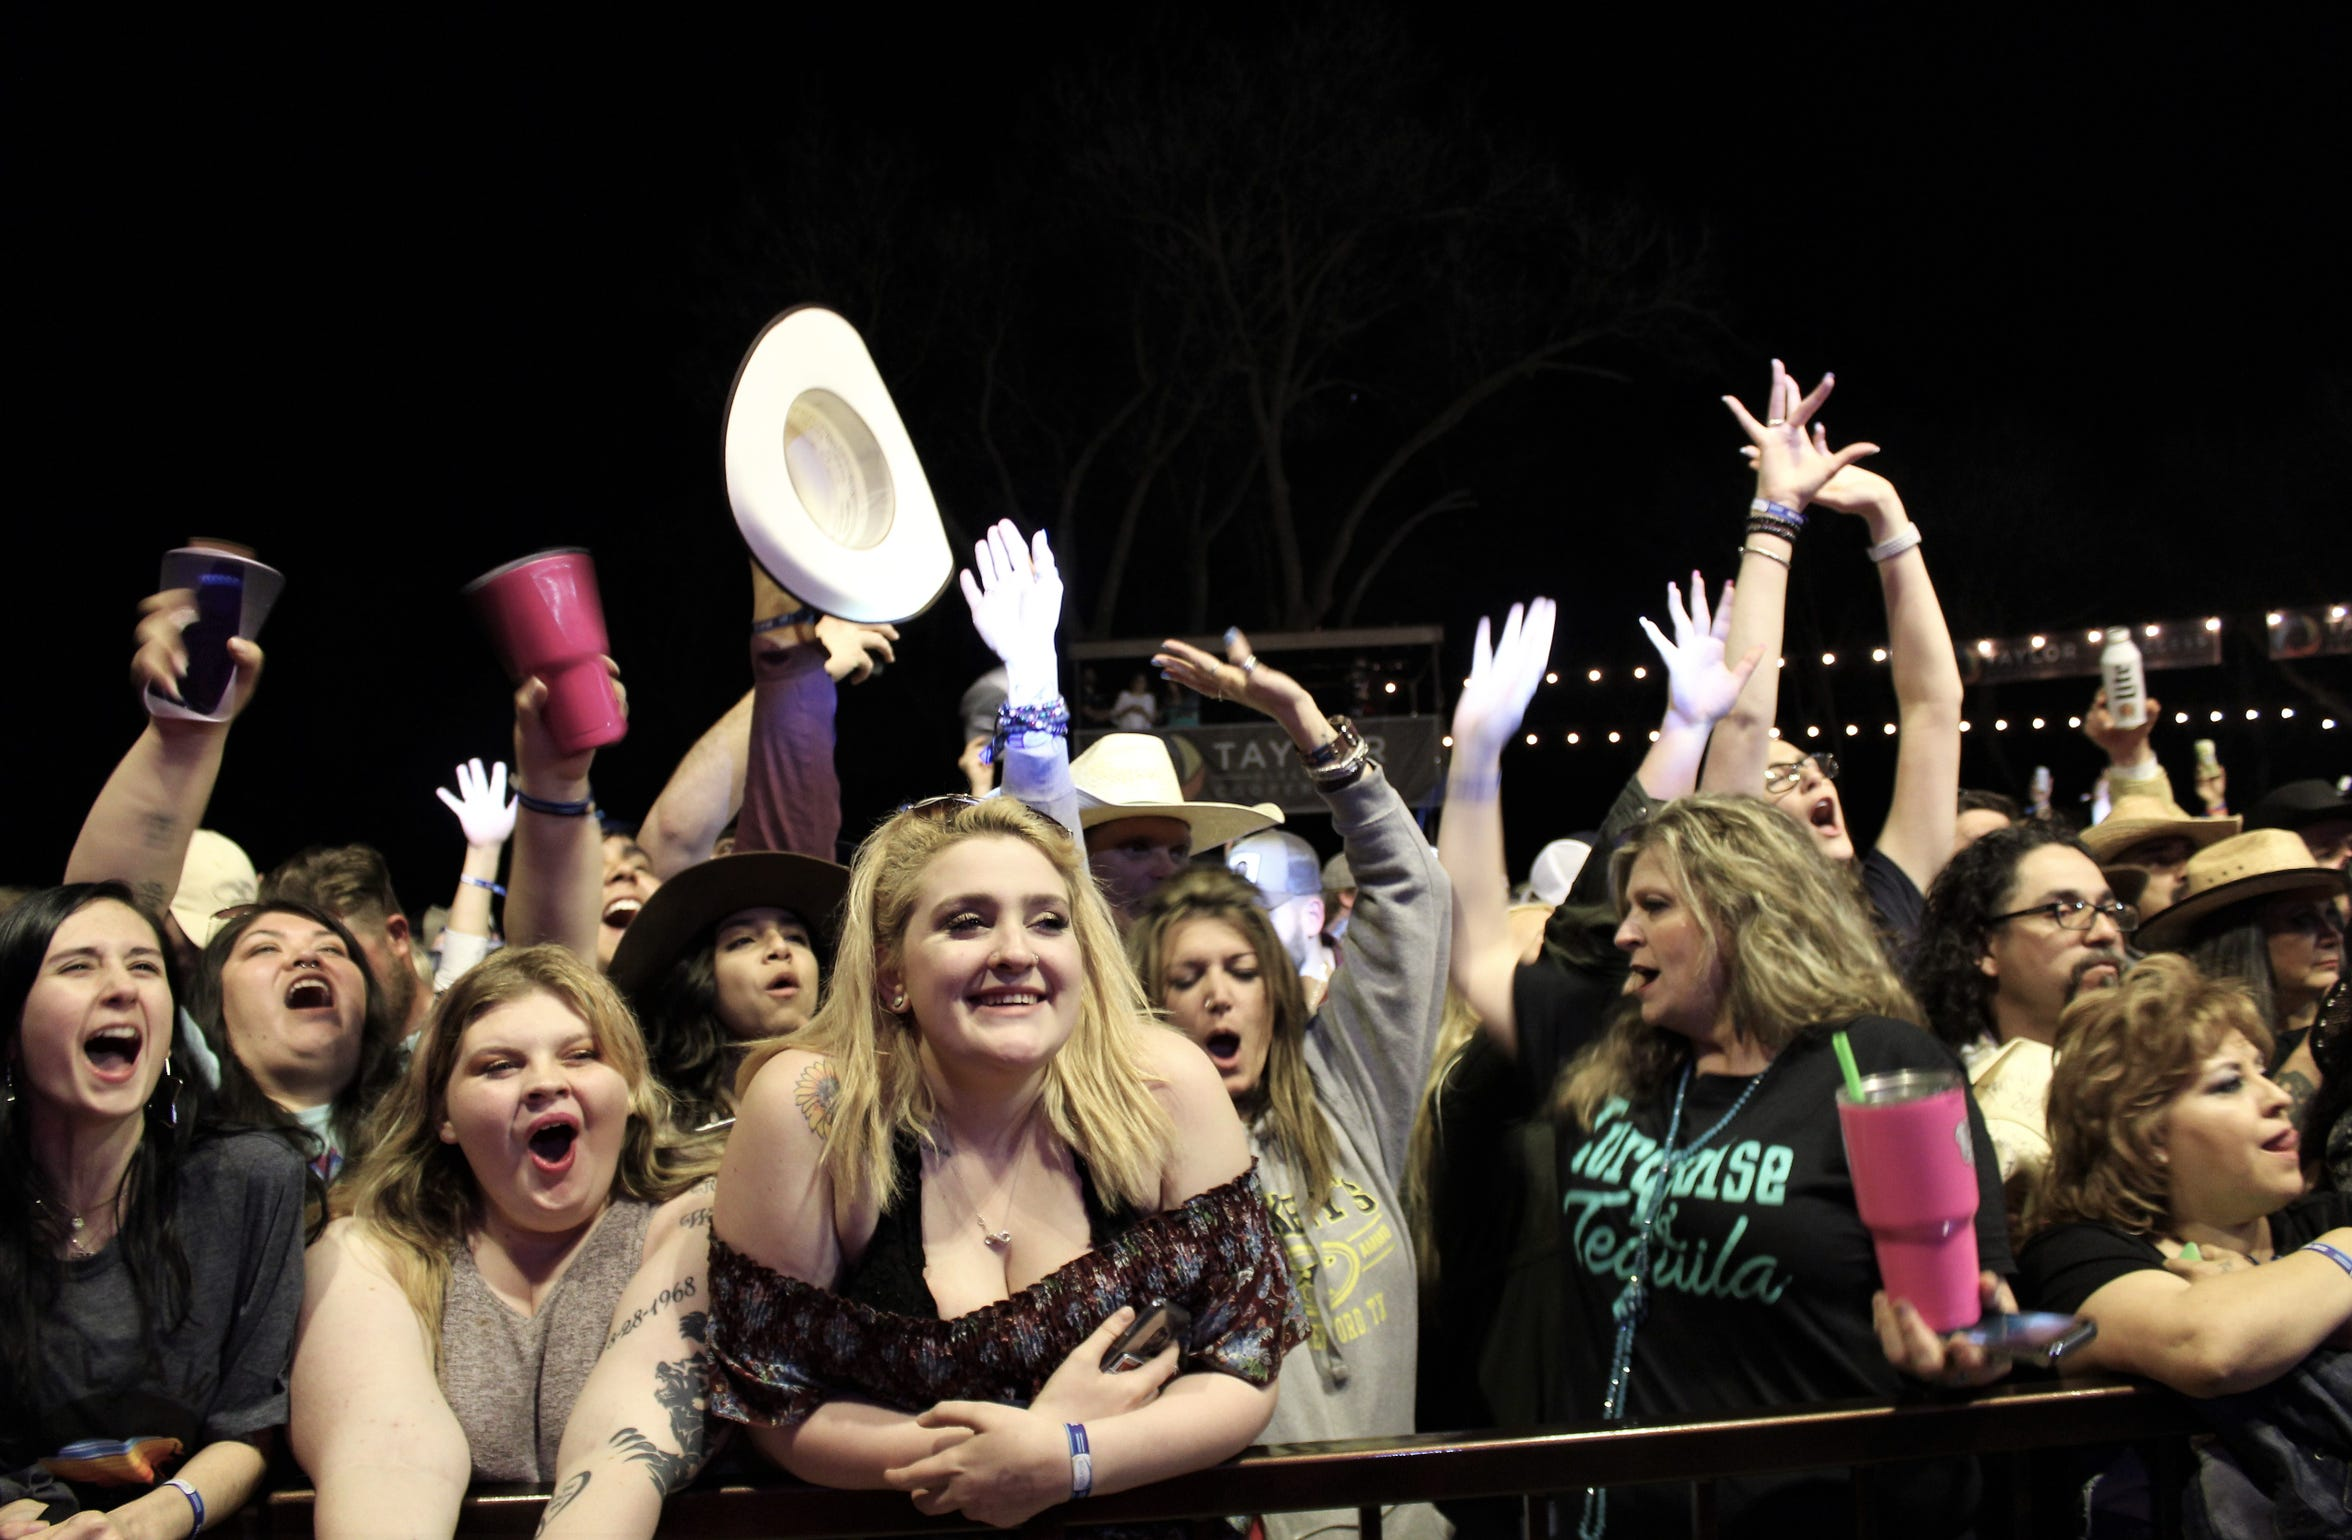 Midland fans, with women in the majority, cheer the Texas trio during the band's headlining performance March 22 at the Ninth Outlaws & Legends Music Festival. More than 12,000 attended the two-day event, a record.